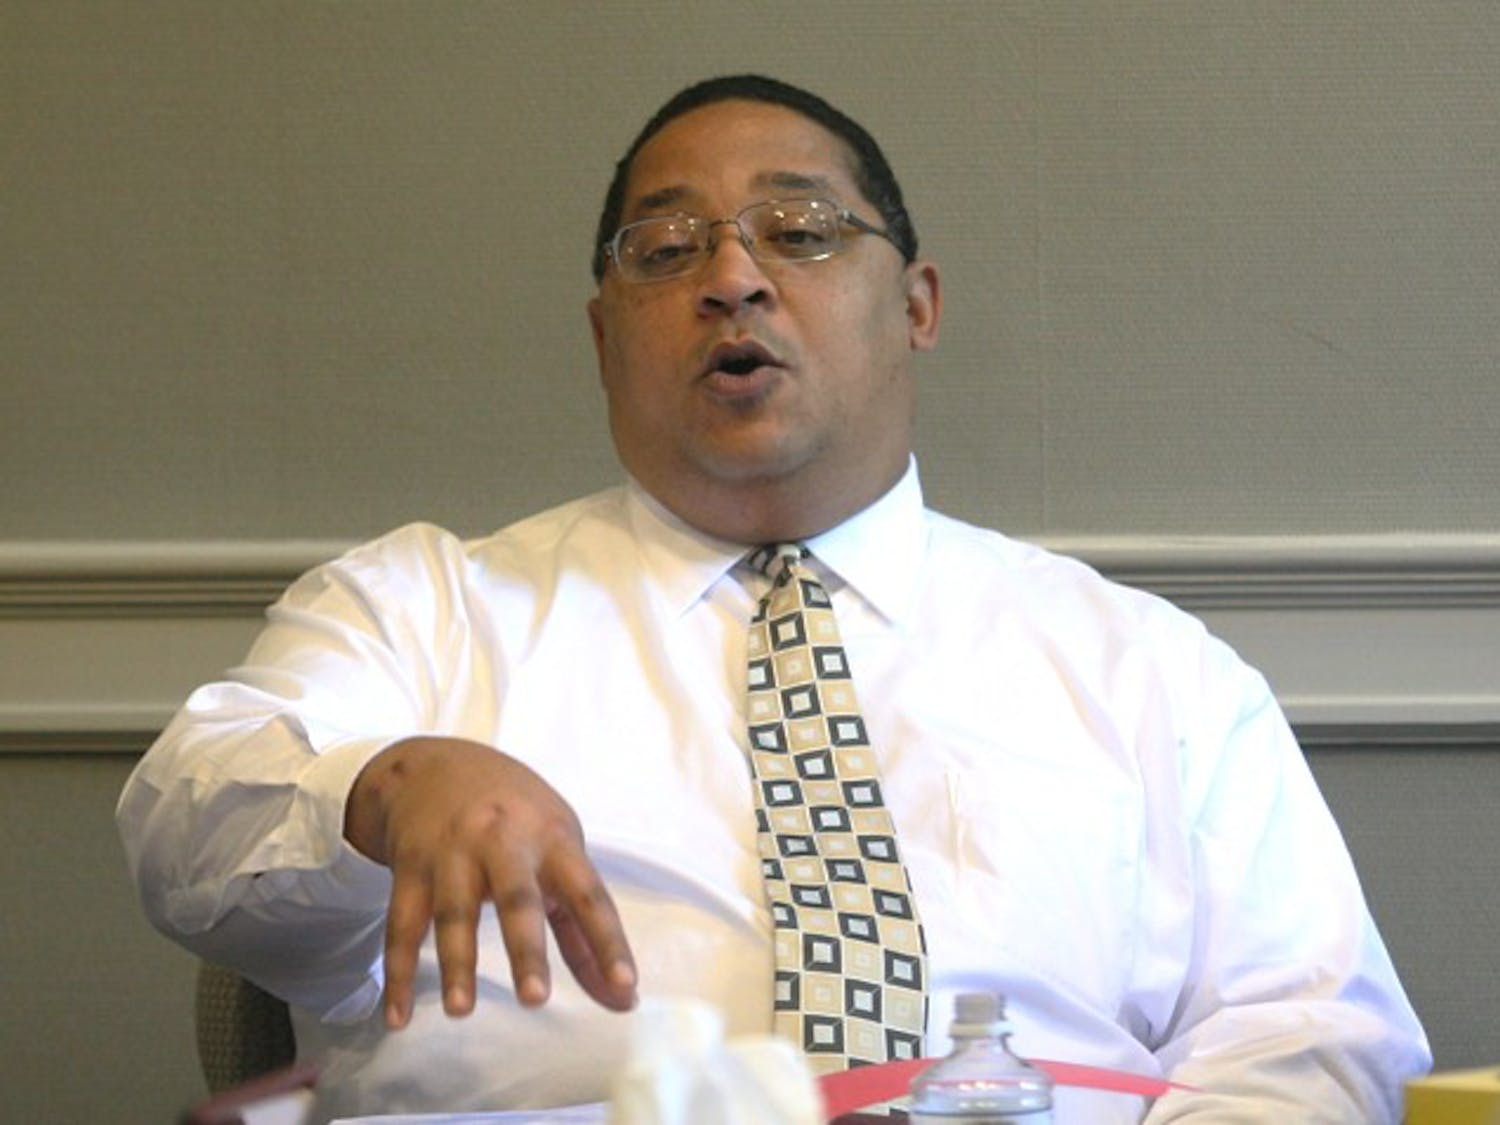 Winston Crisp, Vice Chancellor for Student Affairs, debates the importance of the type of degree that should be required for applicants for the position of Associate Provost for Diversity and Multicultural Affairs. The search committee for the next person to fill this position met Monday to discuss the progress of the search as well as to make amendments to requirements and expectations for applicants.